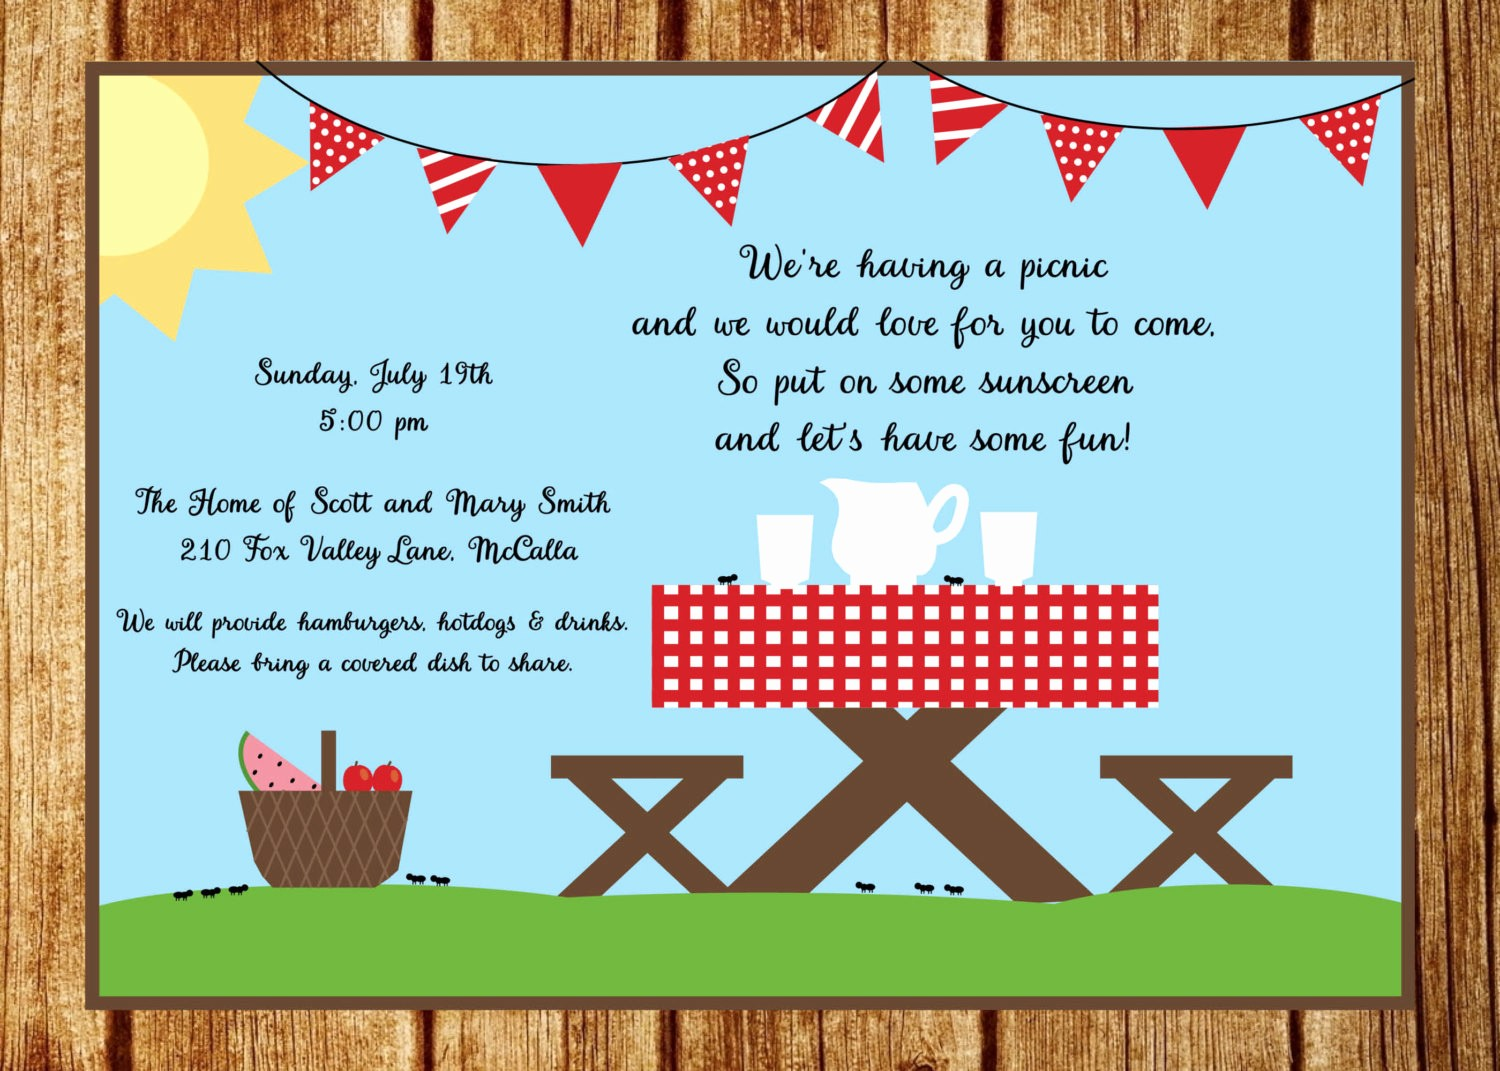 Company Picnic Flyer Template Free New Summer Picnic Invitation Summer Party Invitation Custom Park